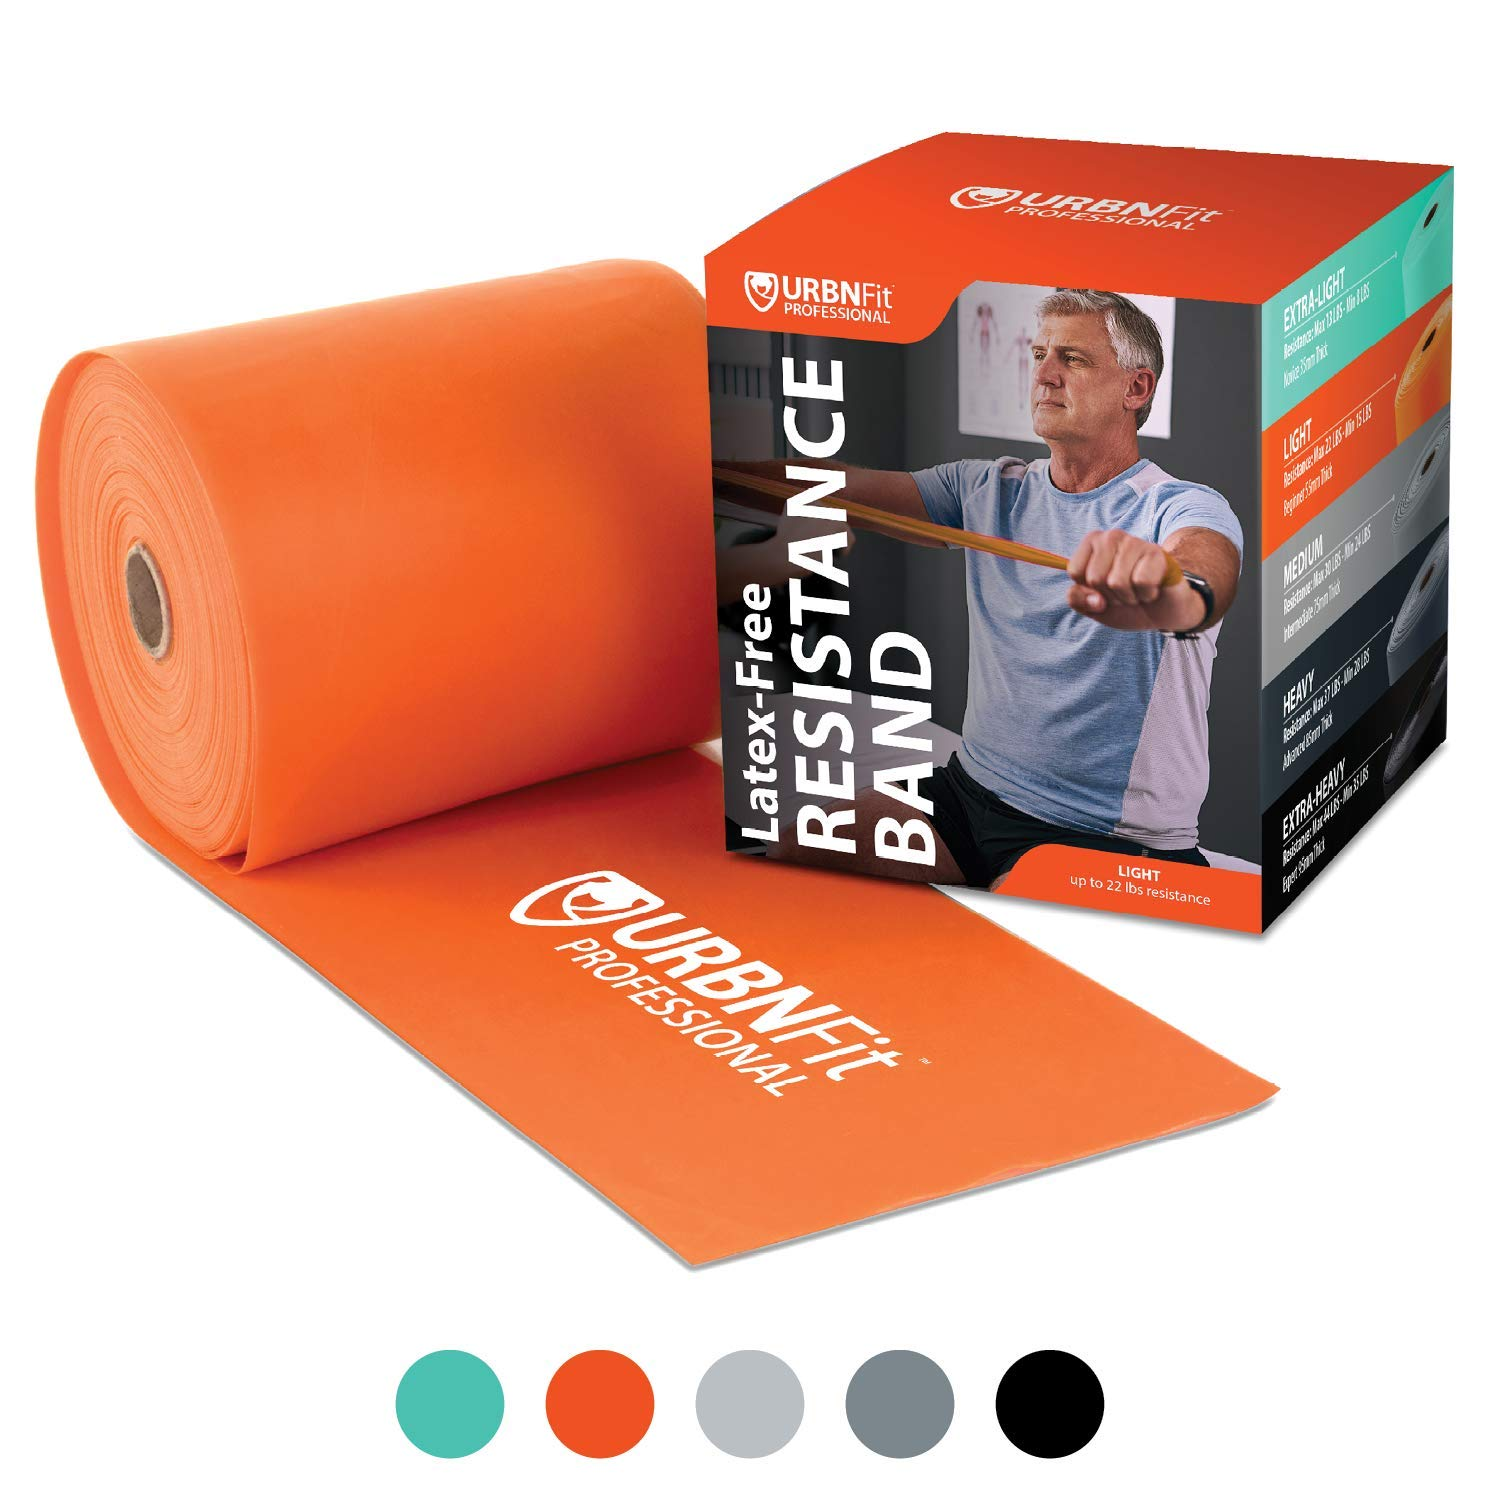 Professional Resistance Bands - 25 Yards (75ft) Latex-Free Elastic Exercise Fitness Band Roll - No Scent, No Powder - Perfect for Physical Therapy & Rehab, Yoga, Pilates (Orange - Medium 55mm)